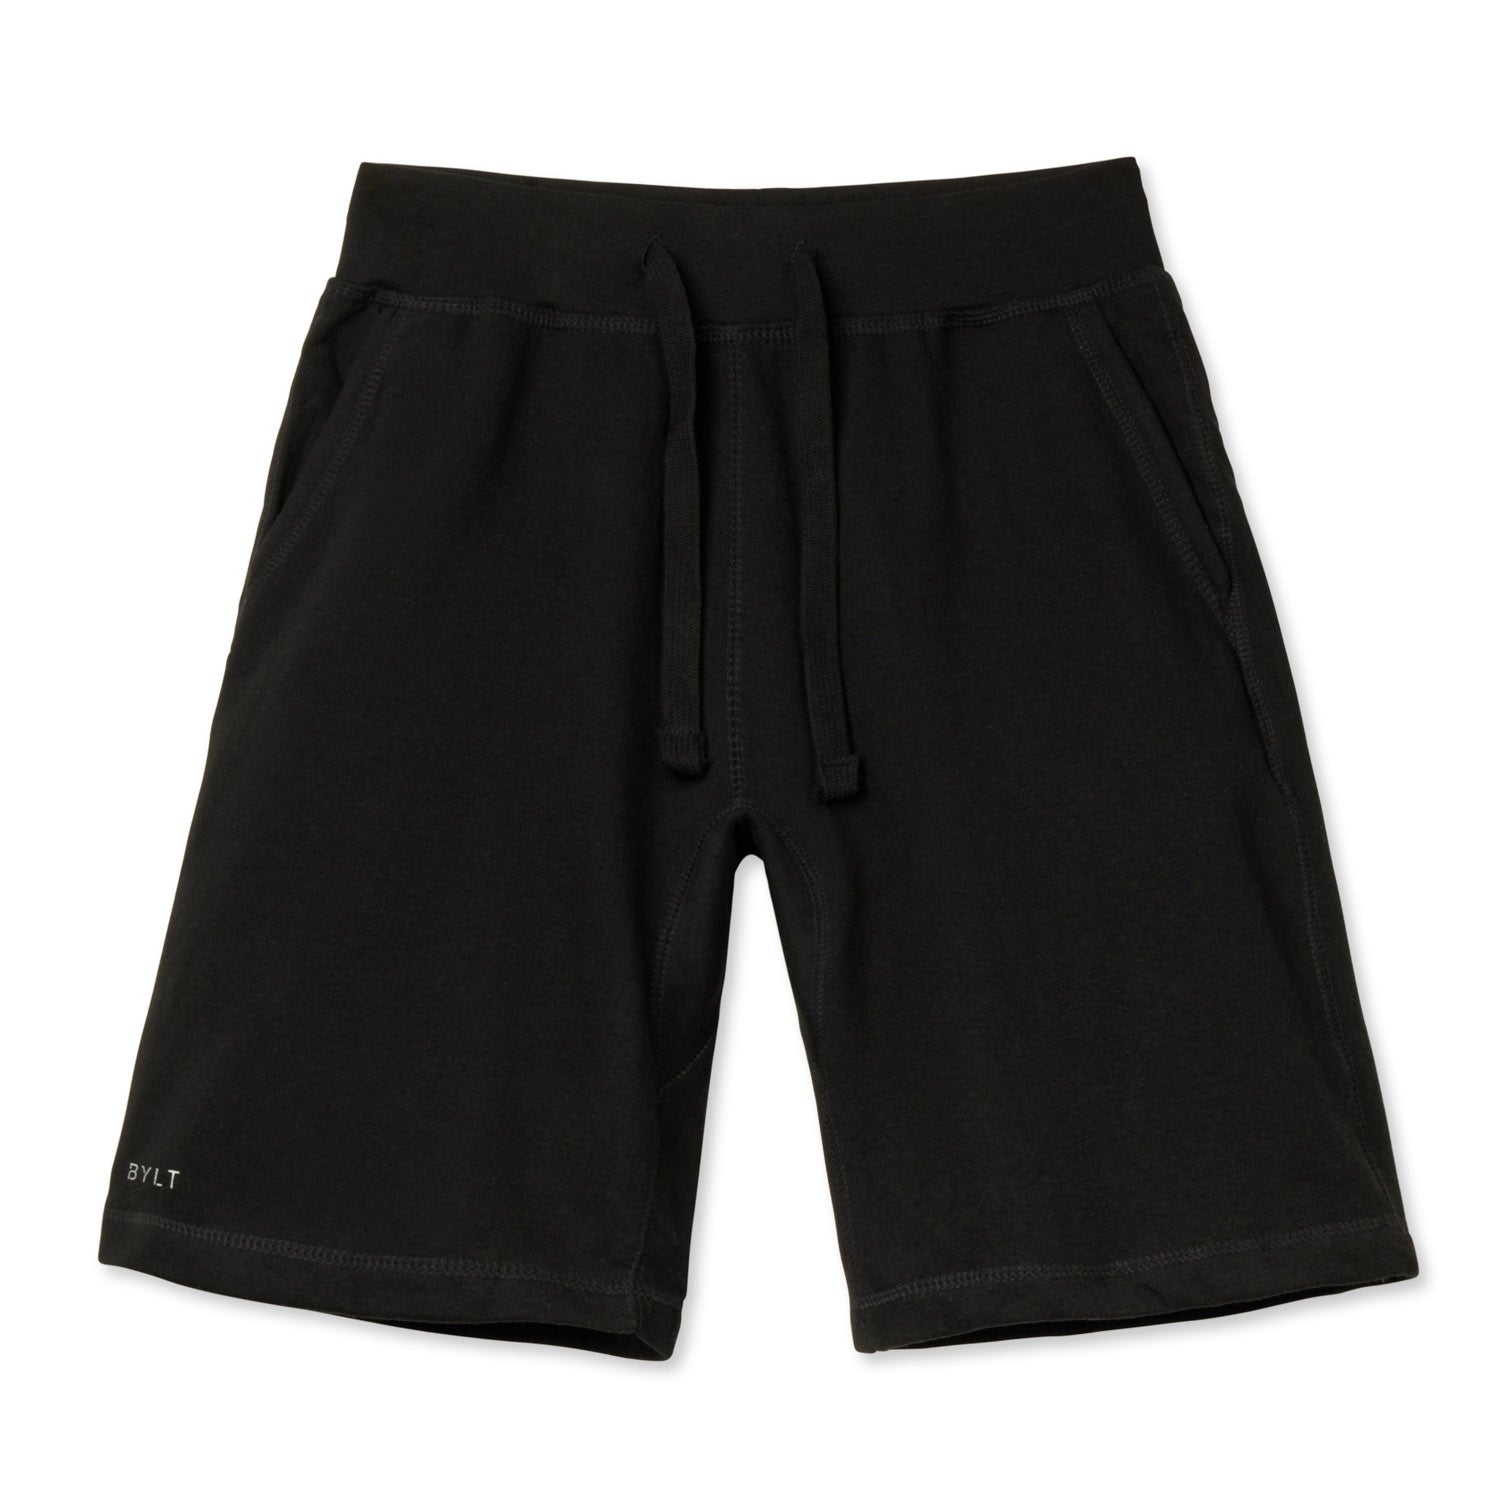 BYLT (BUILT) APPAREL BASICS JOGGER SHORTS BLACK.